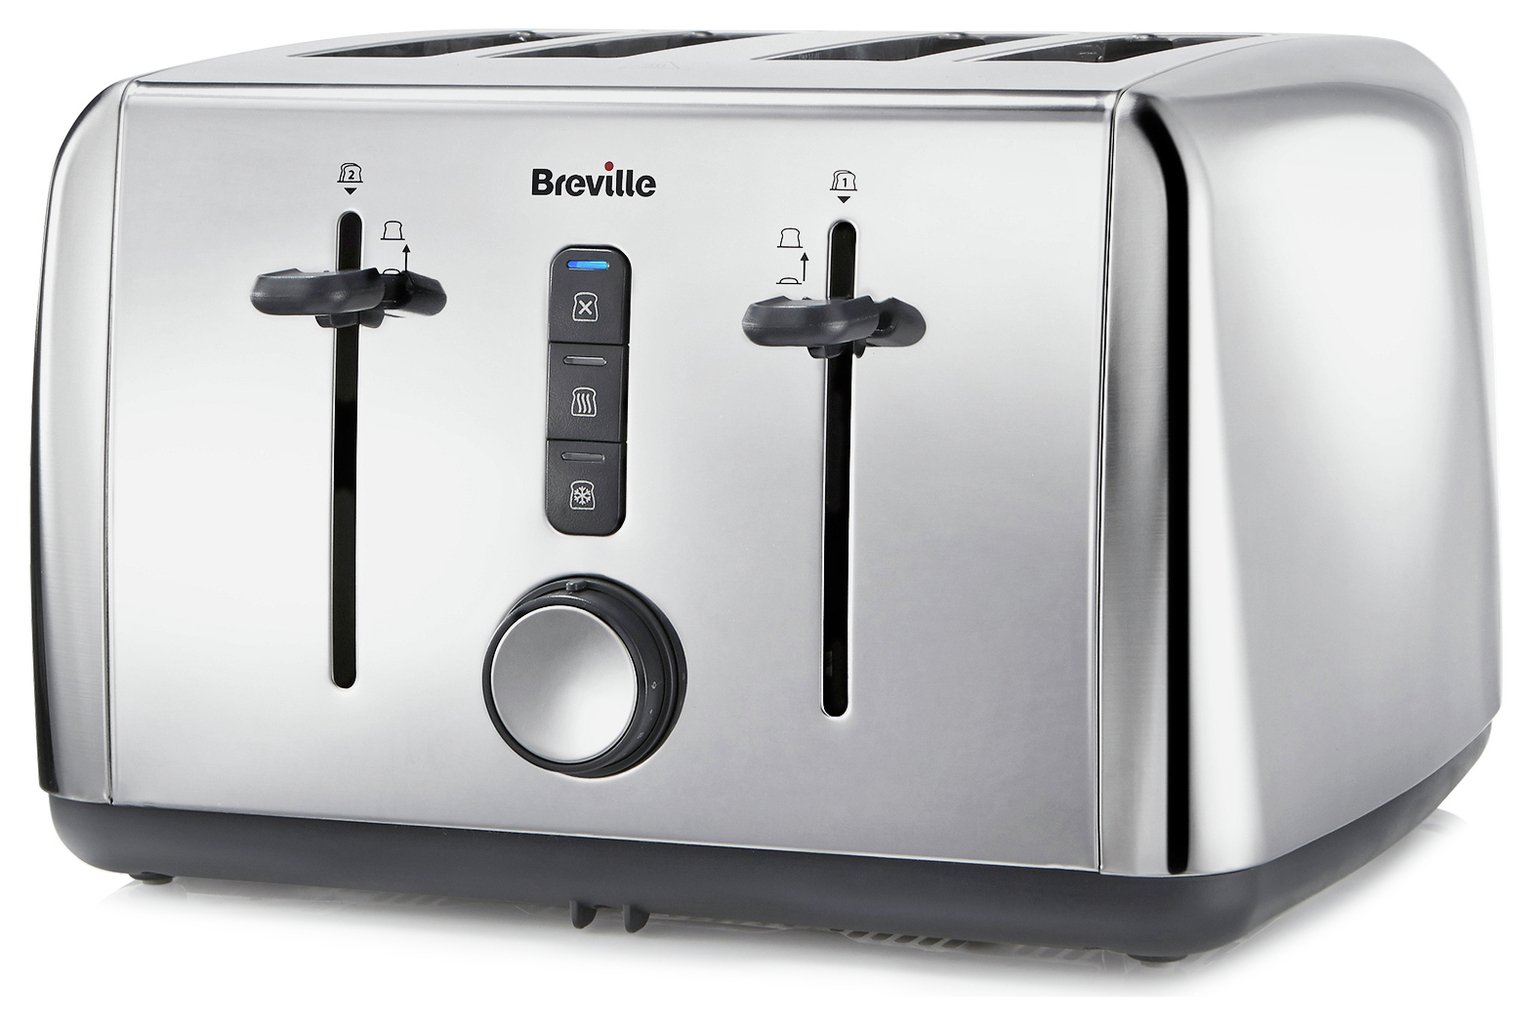 breville 4 slice toaster stainless steel